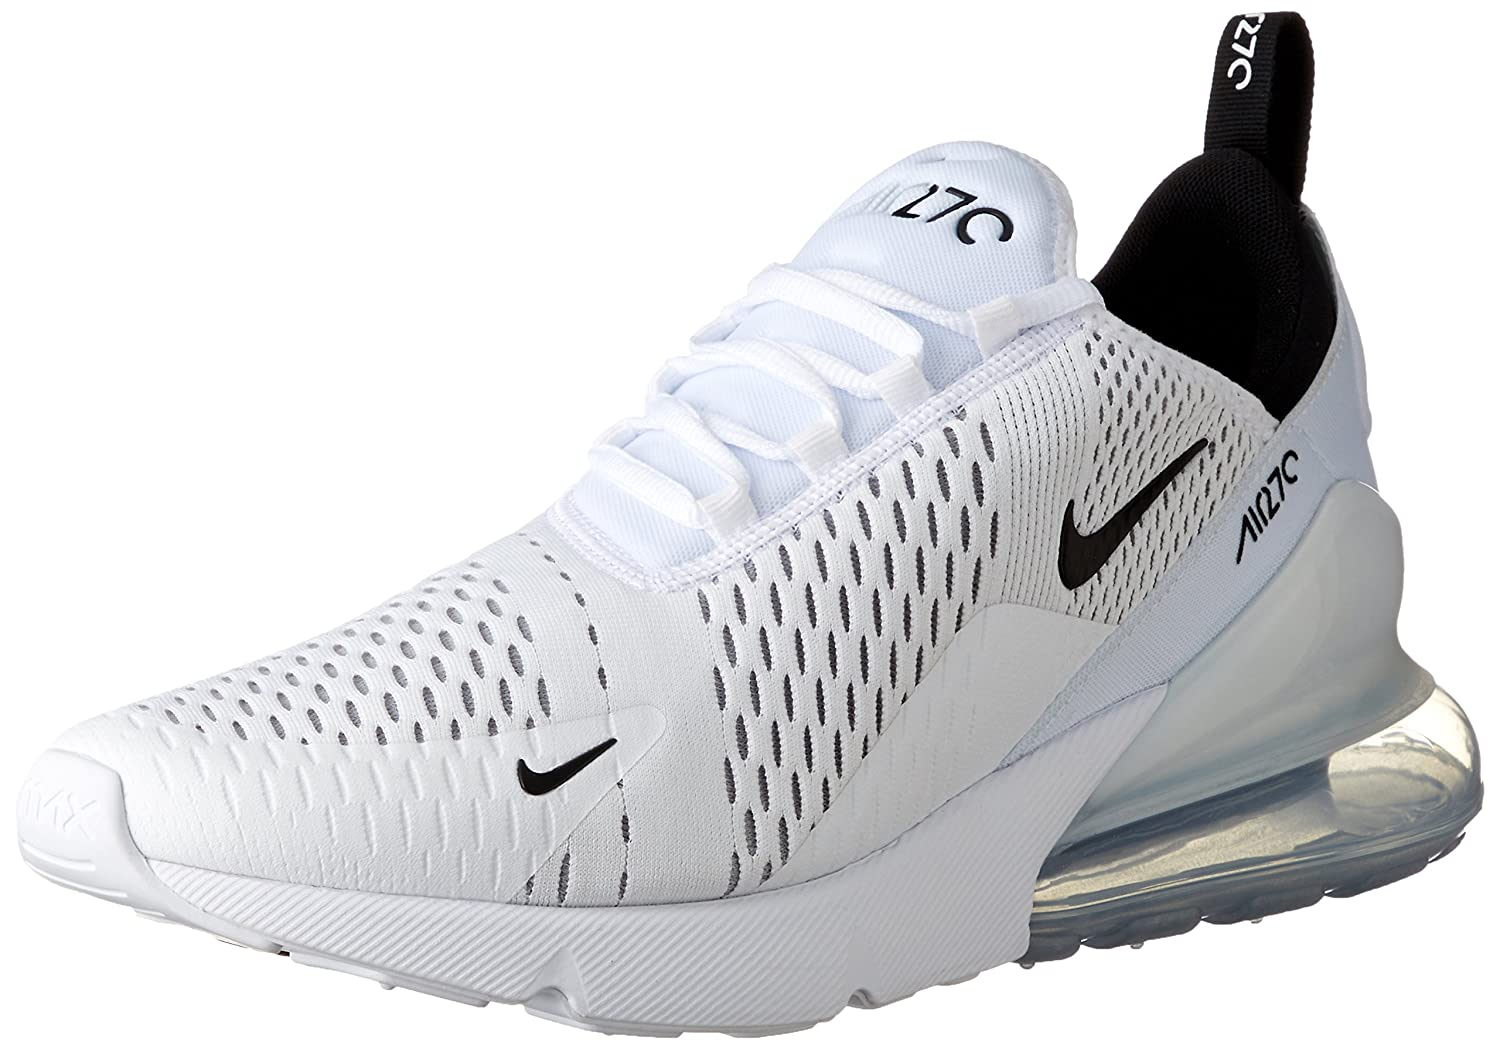 c11d2b124b Nike Men's Air Max 270 Gymnastics Shoes: Amazon.co.uk: Shoes & Bags